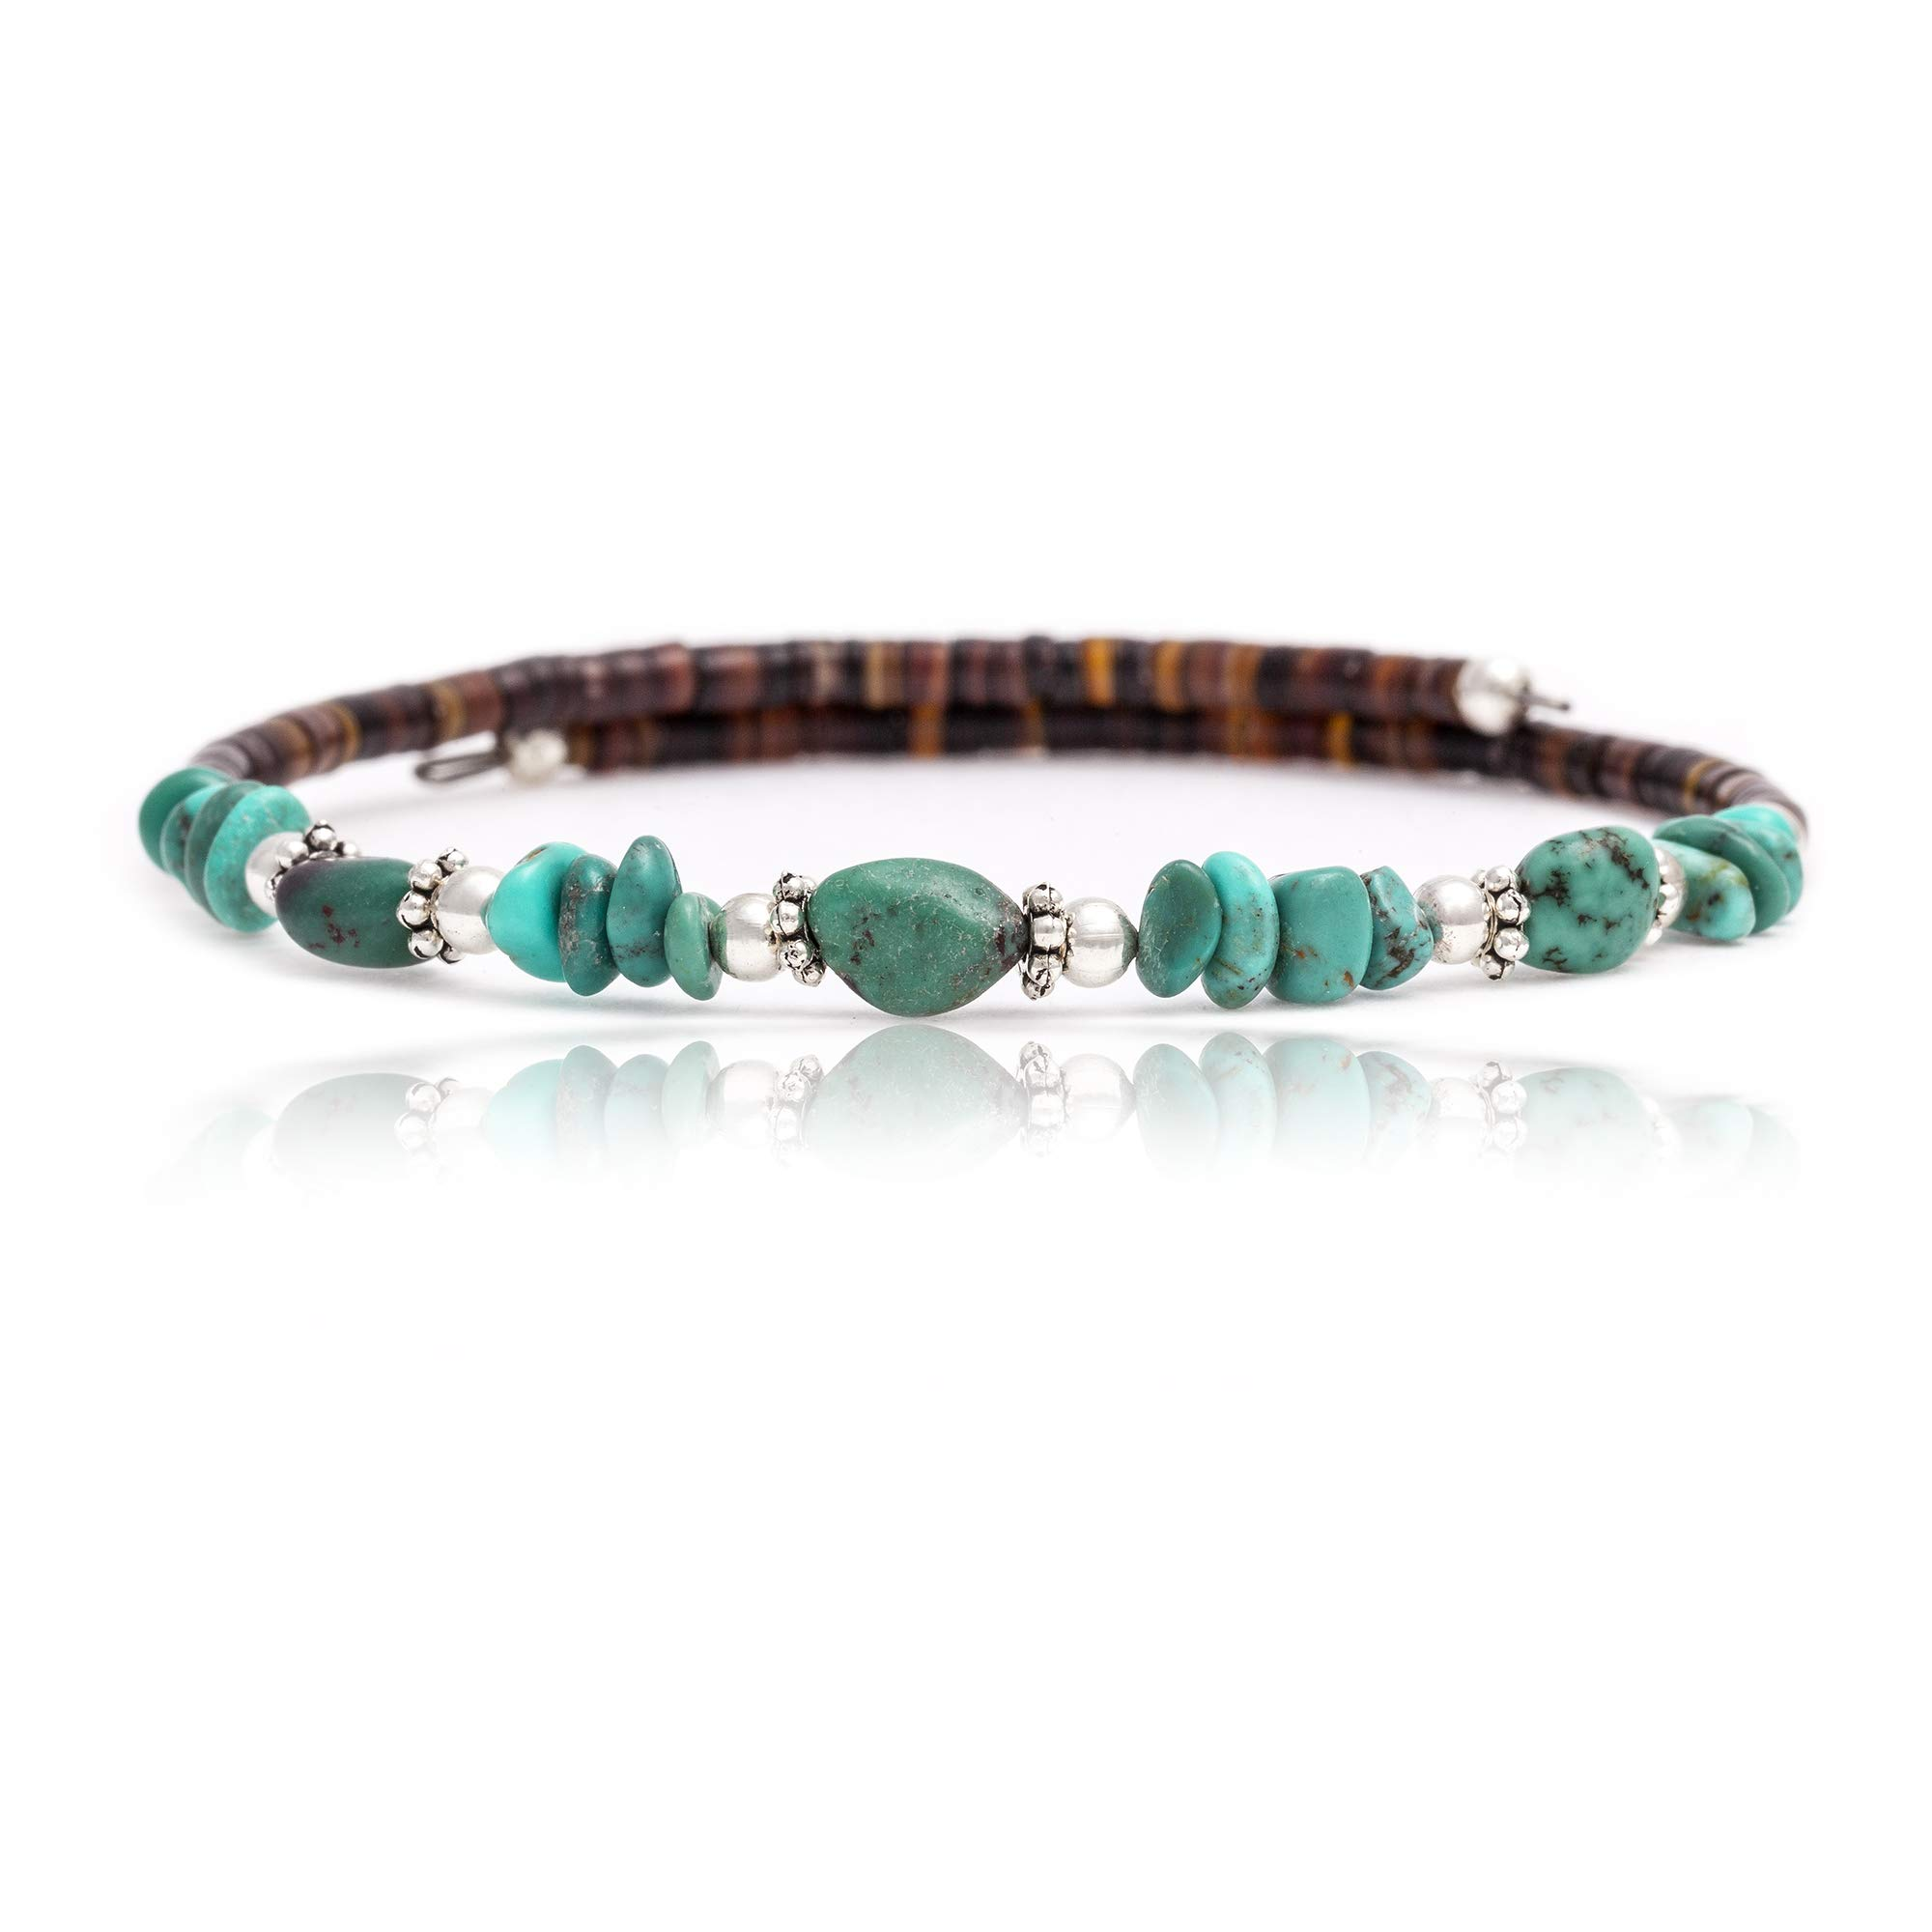 $80 Tag Certified Authentic Navajo Native American Natural Turquoise Adjustable Wrap Bracelet 12732-14 by NativeAmericanWholesale